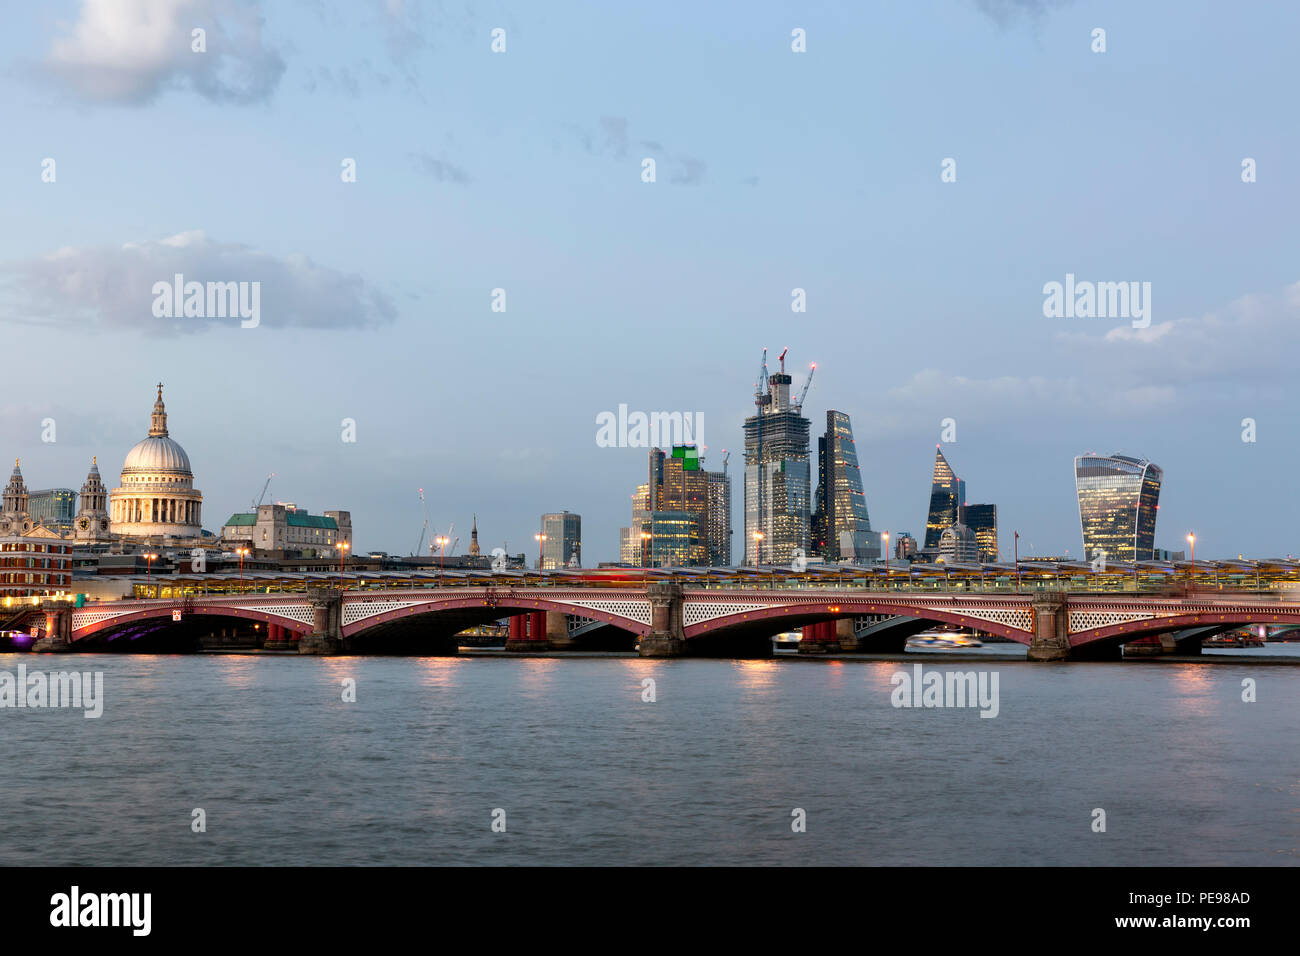 Blackfriars Bridge and City of London viewed from the South Bank of the River Thames at Twilight - Stock Image